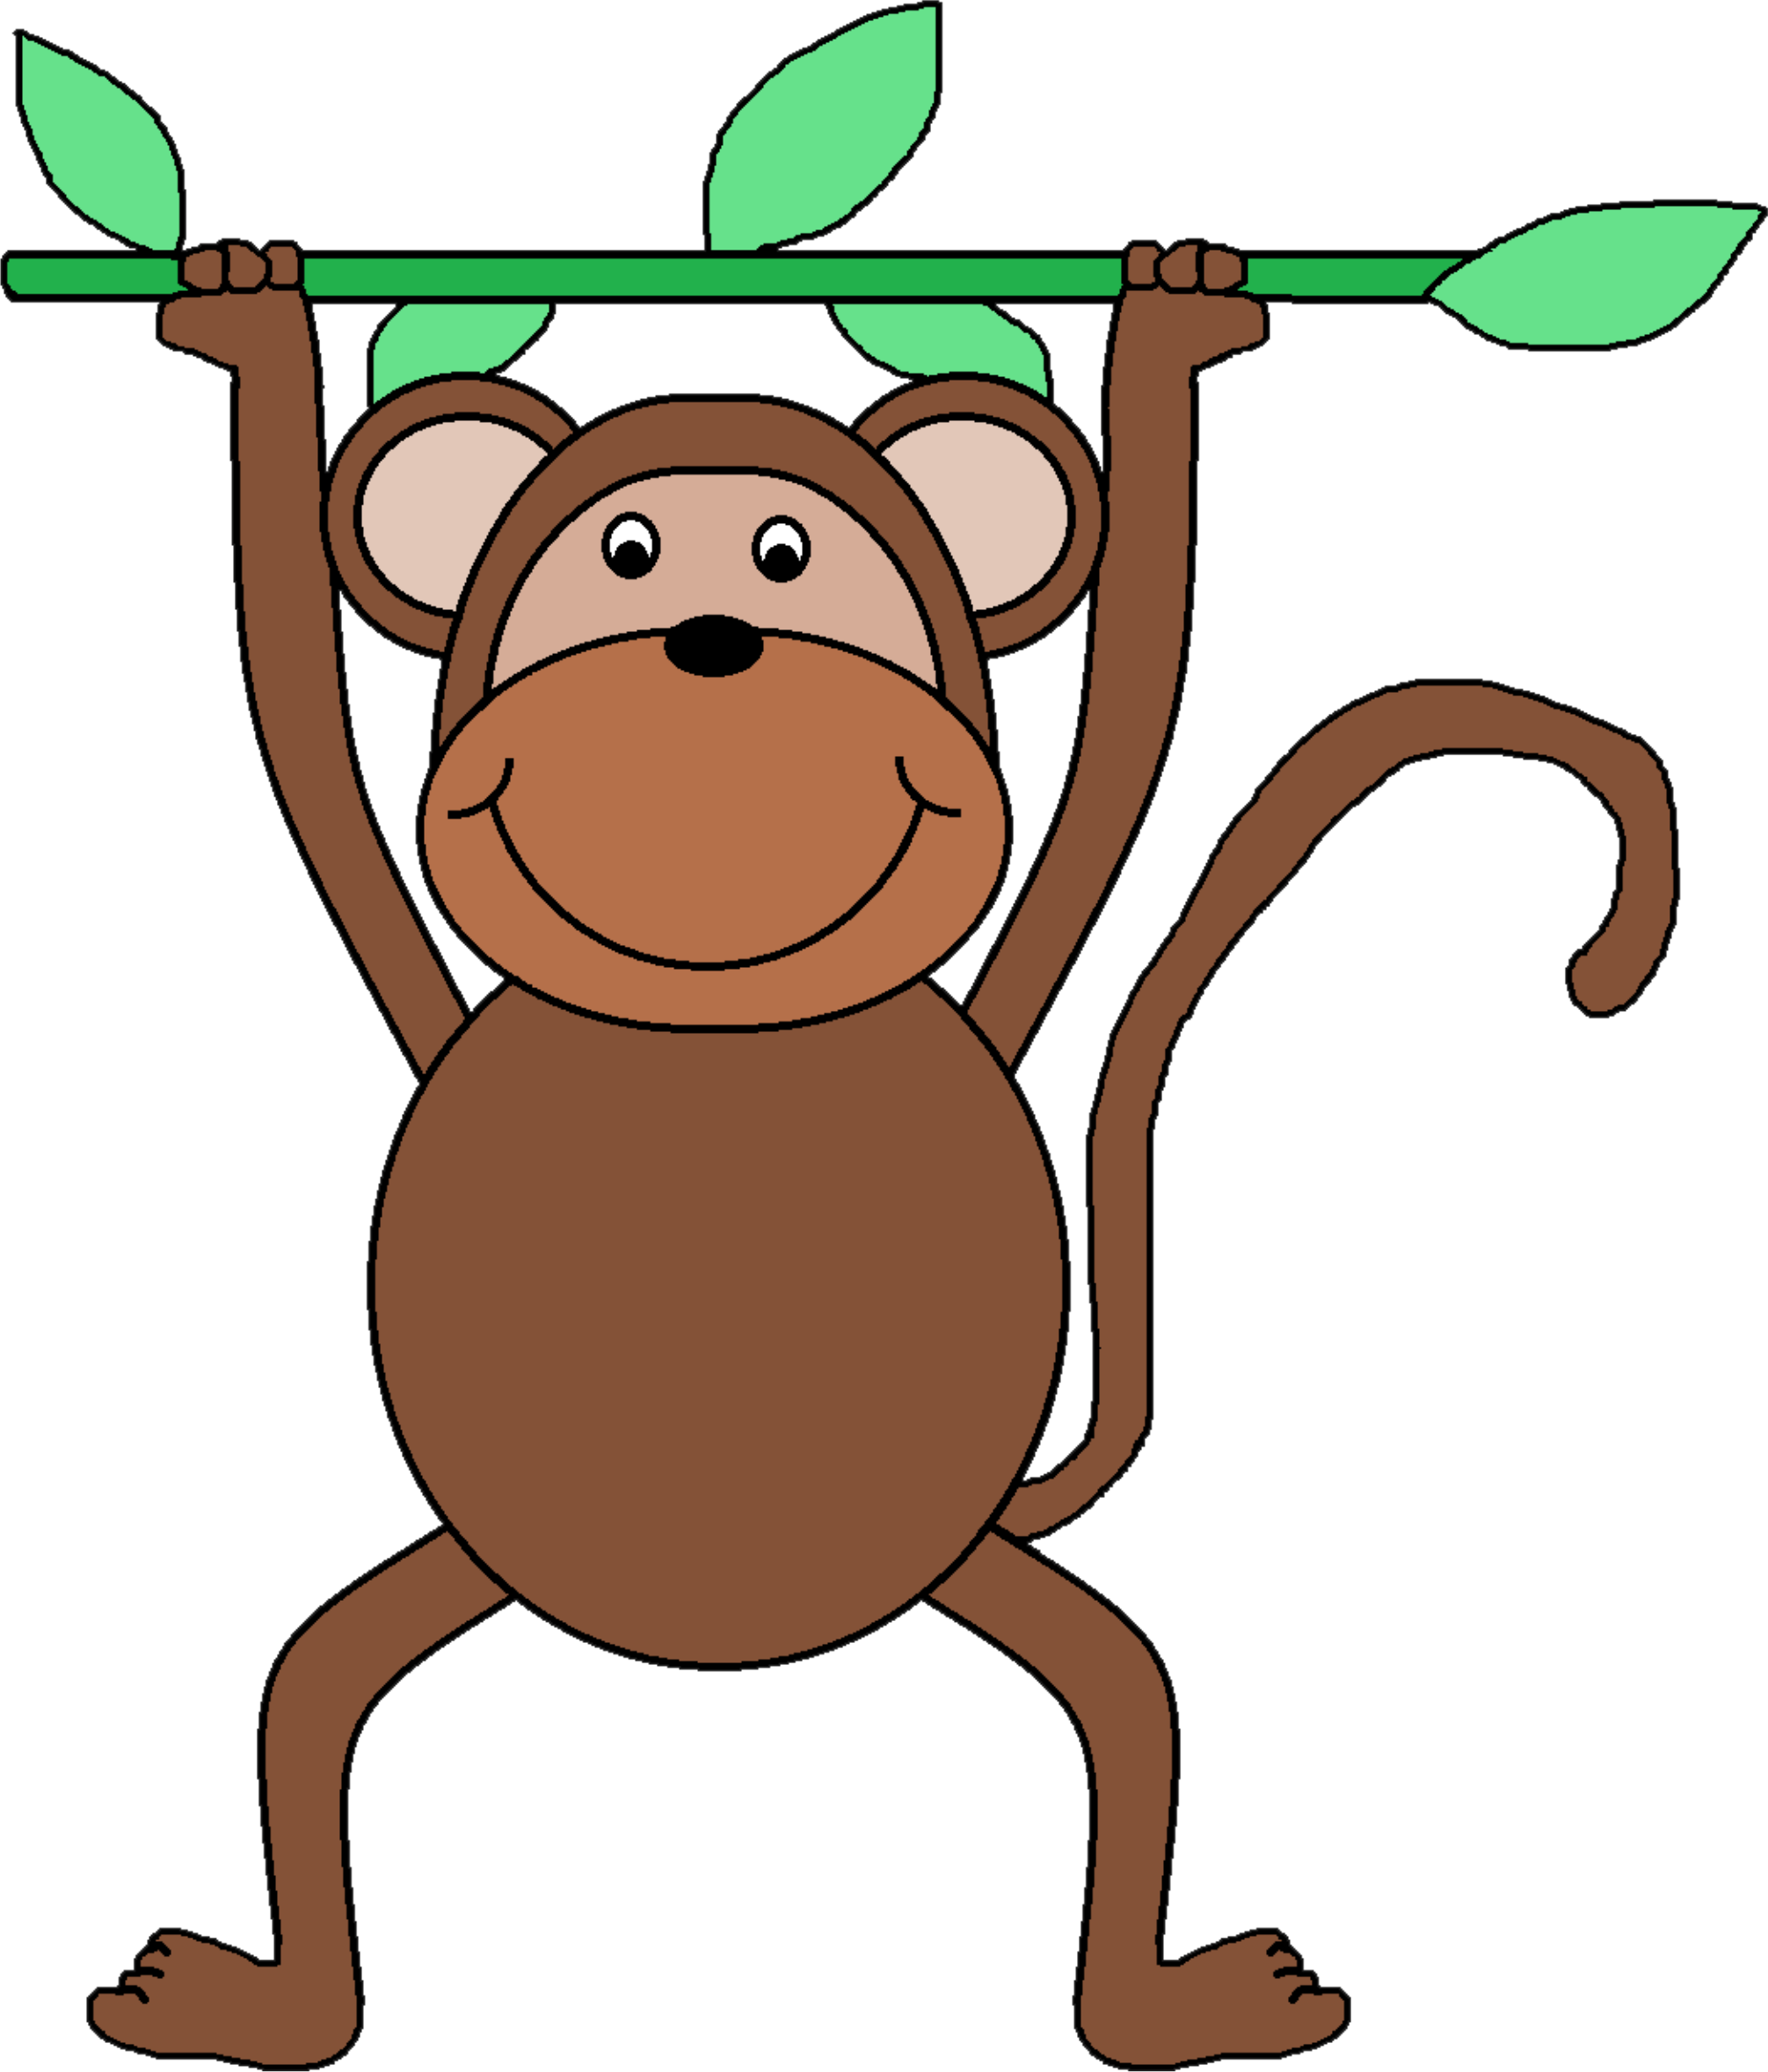 Monkey in tree clipart banner free Monkey Clipart at GetDrawings.com | Free for personal use Monkey ... banner free